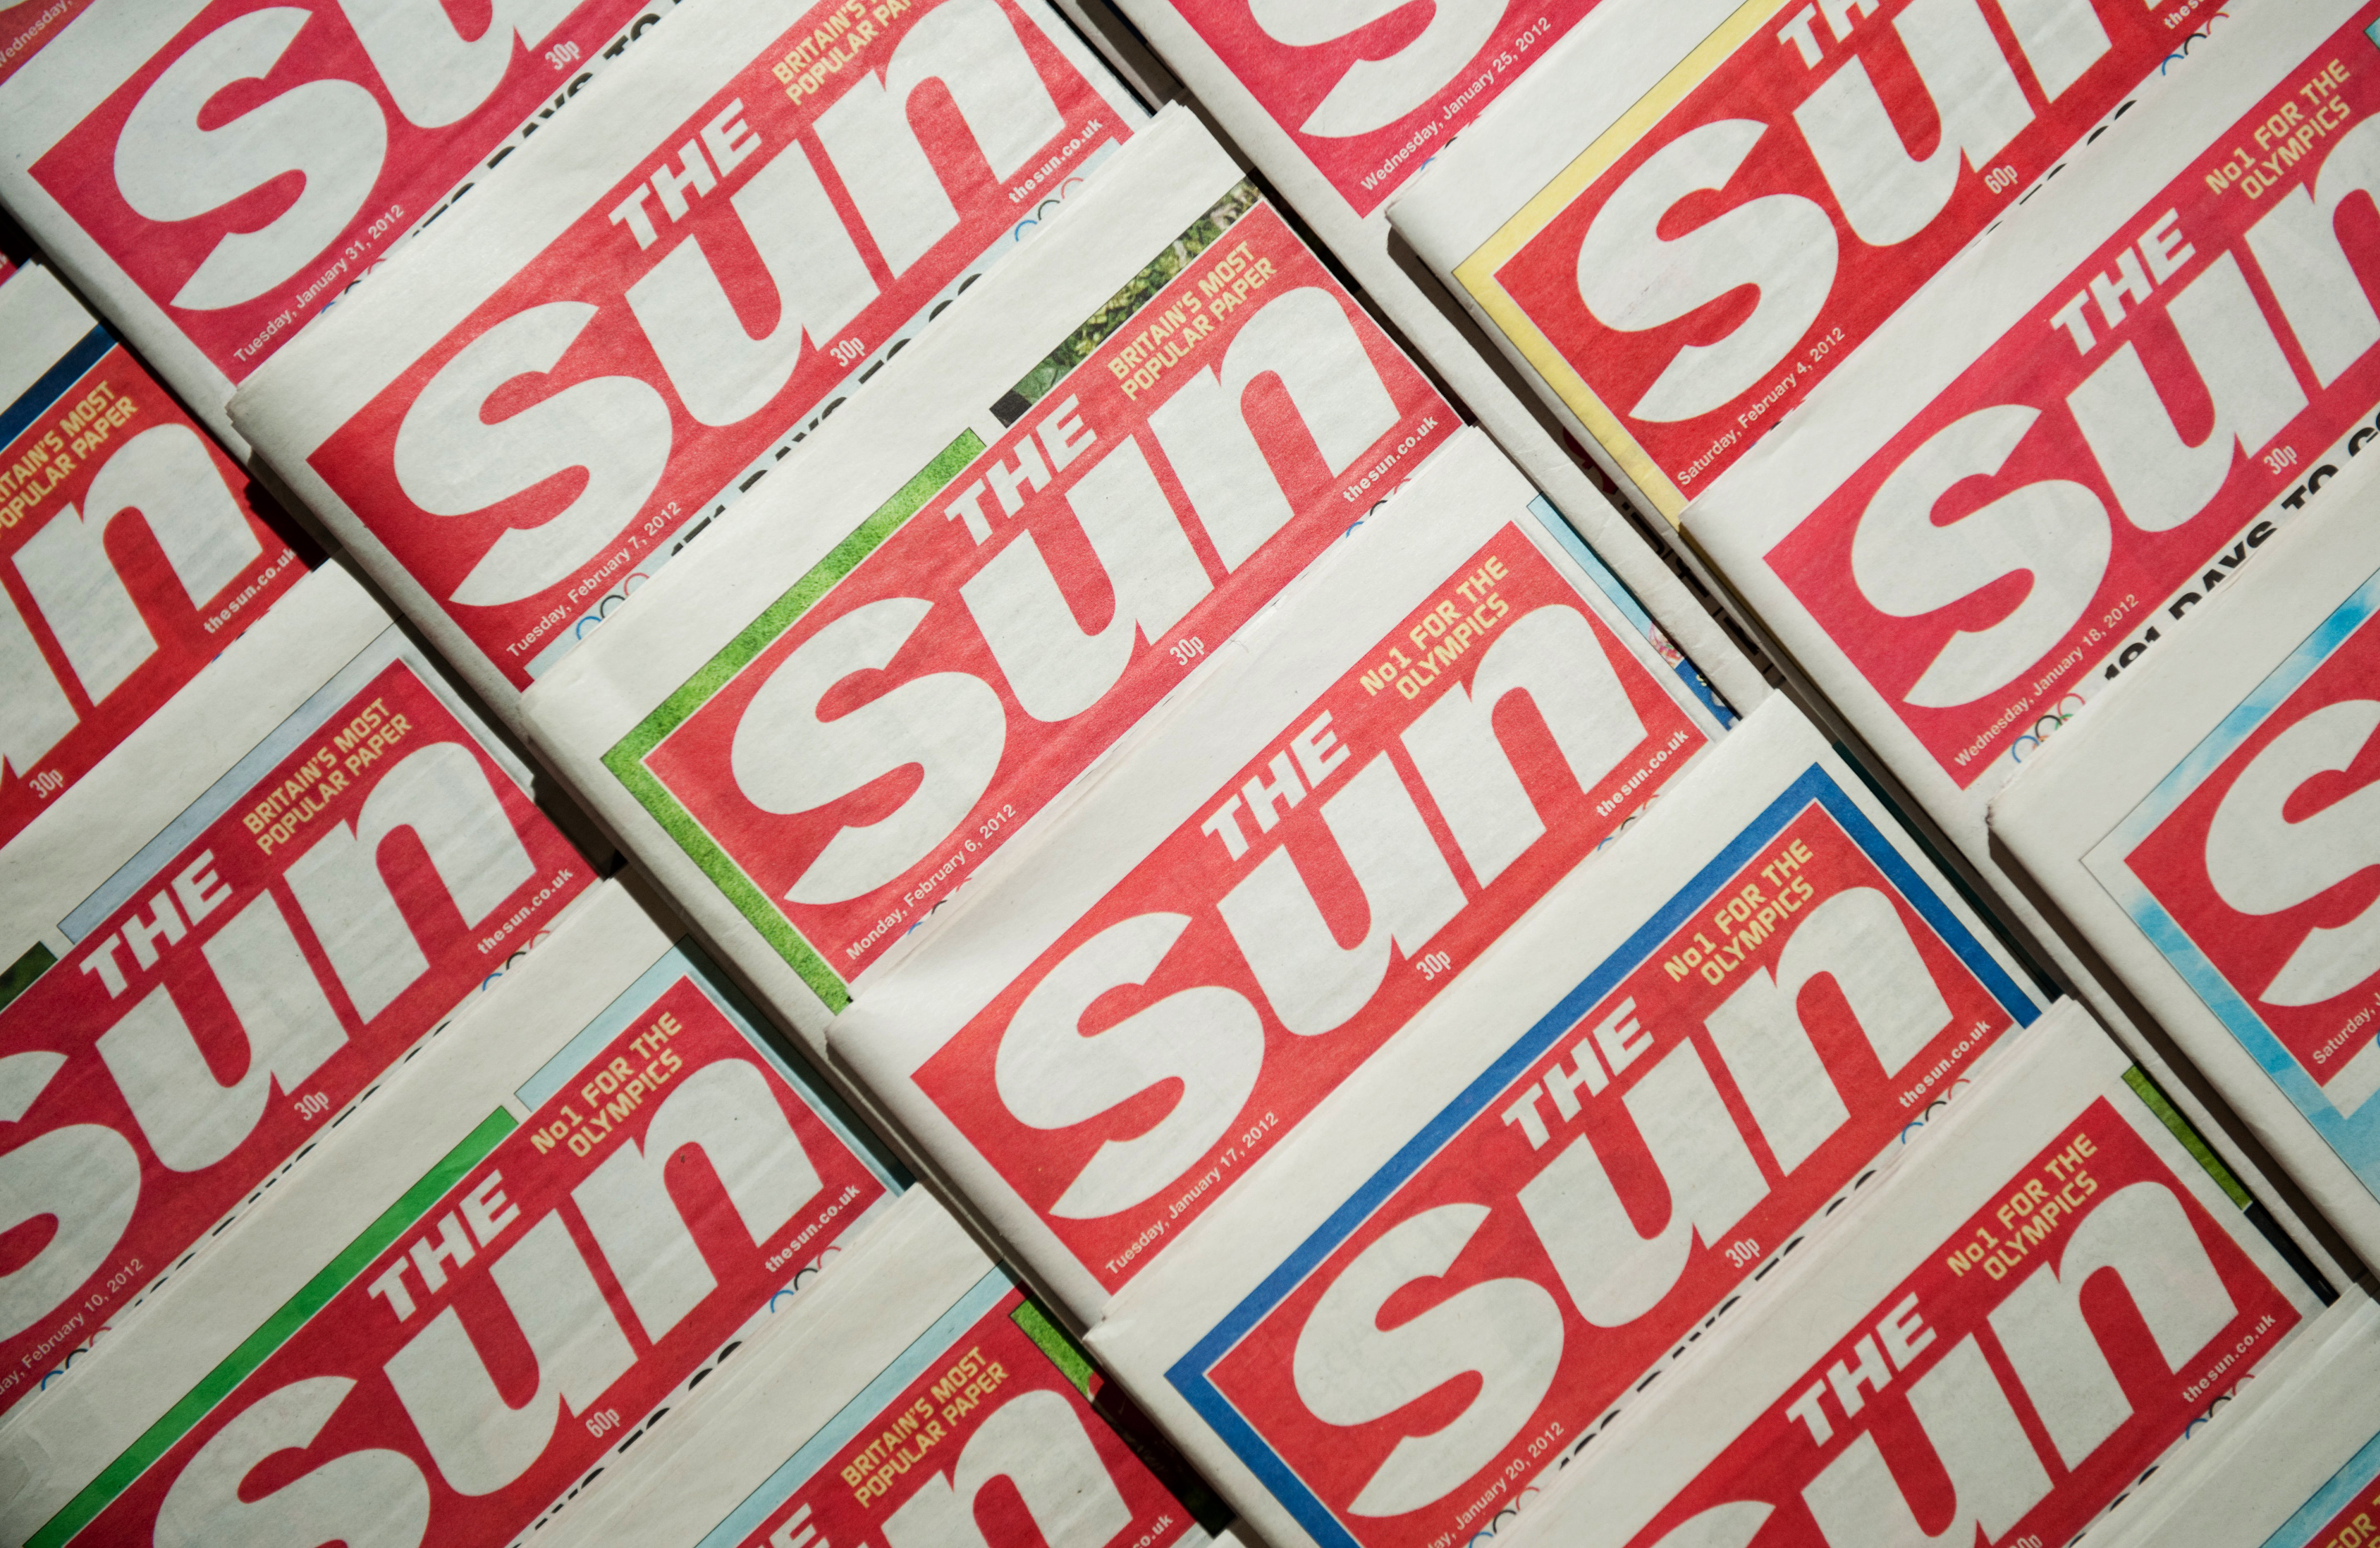 Picture shows an arrangement of copies of The Sun newspaper front pages on February 13, 2012.